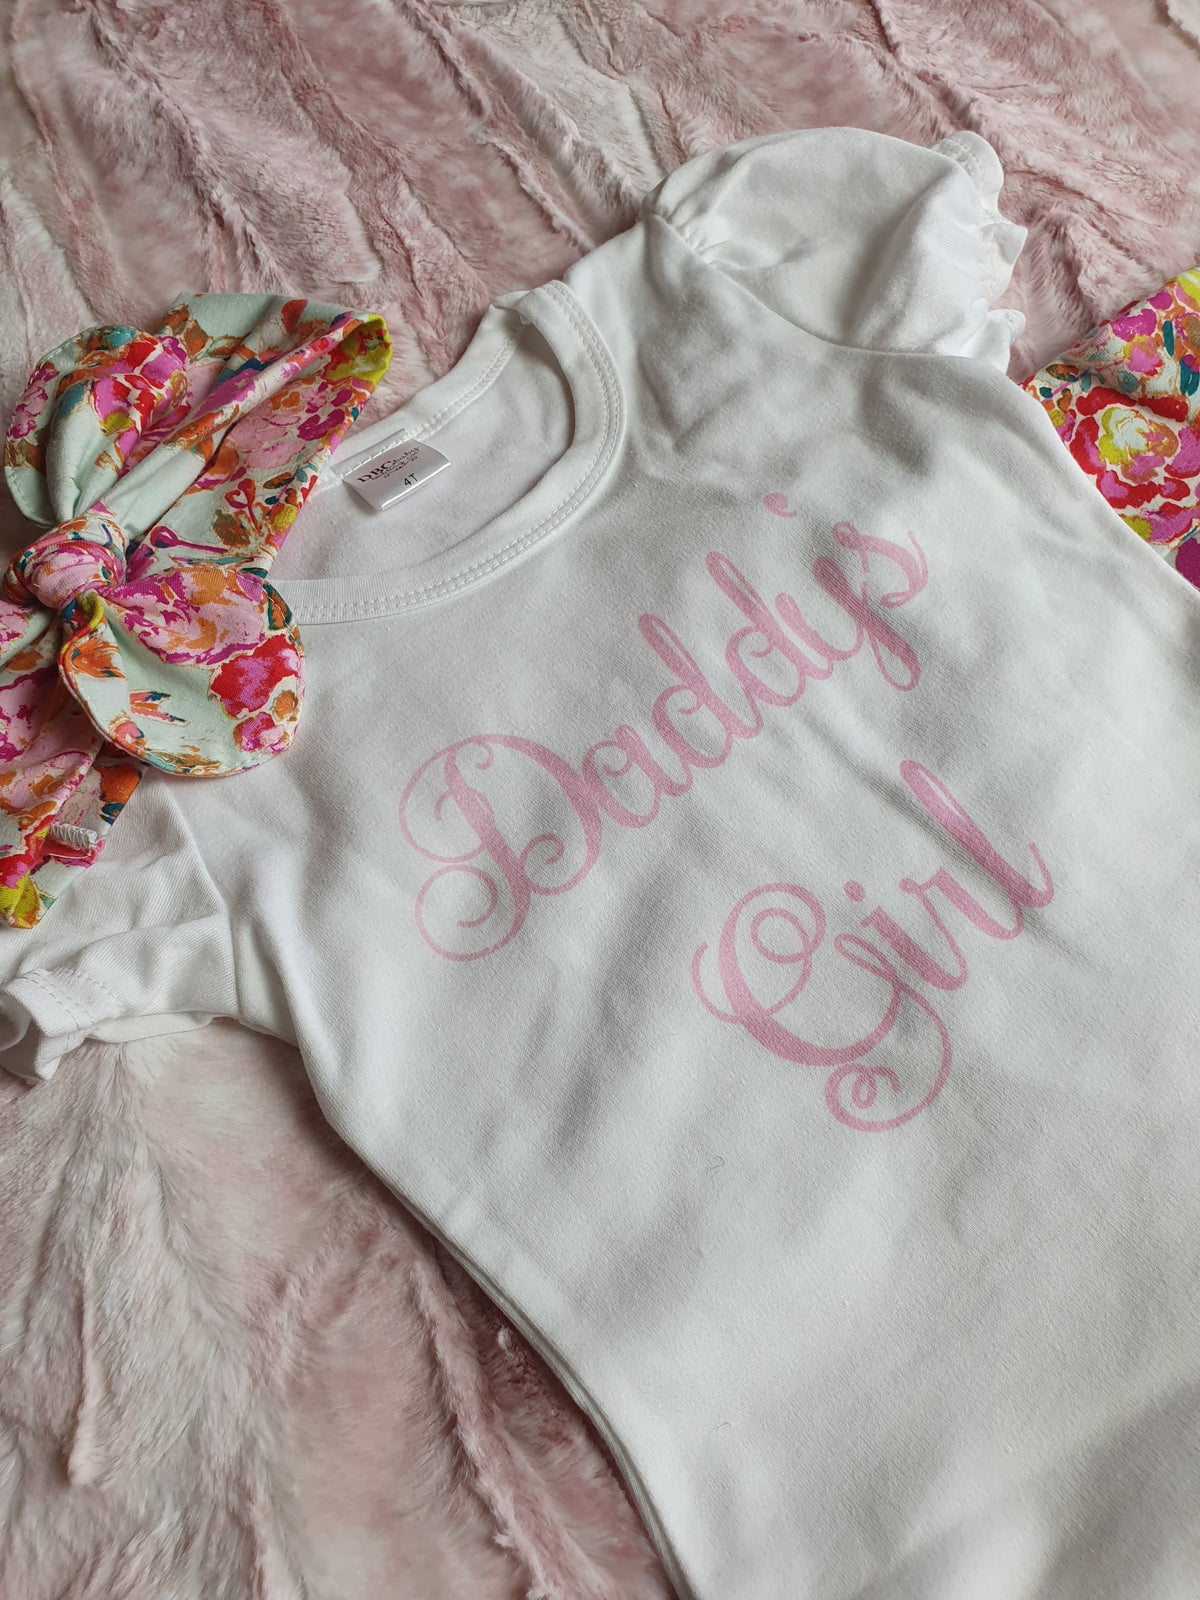 New Design Baby/Toddler Outfit - 3pc Ruffle Pants Set - Daddy's Girl Summer Floral